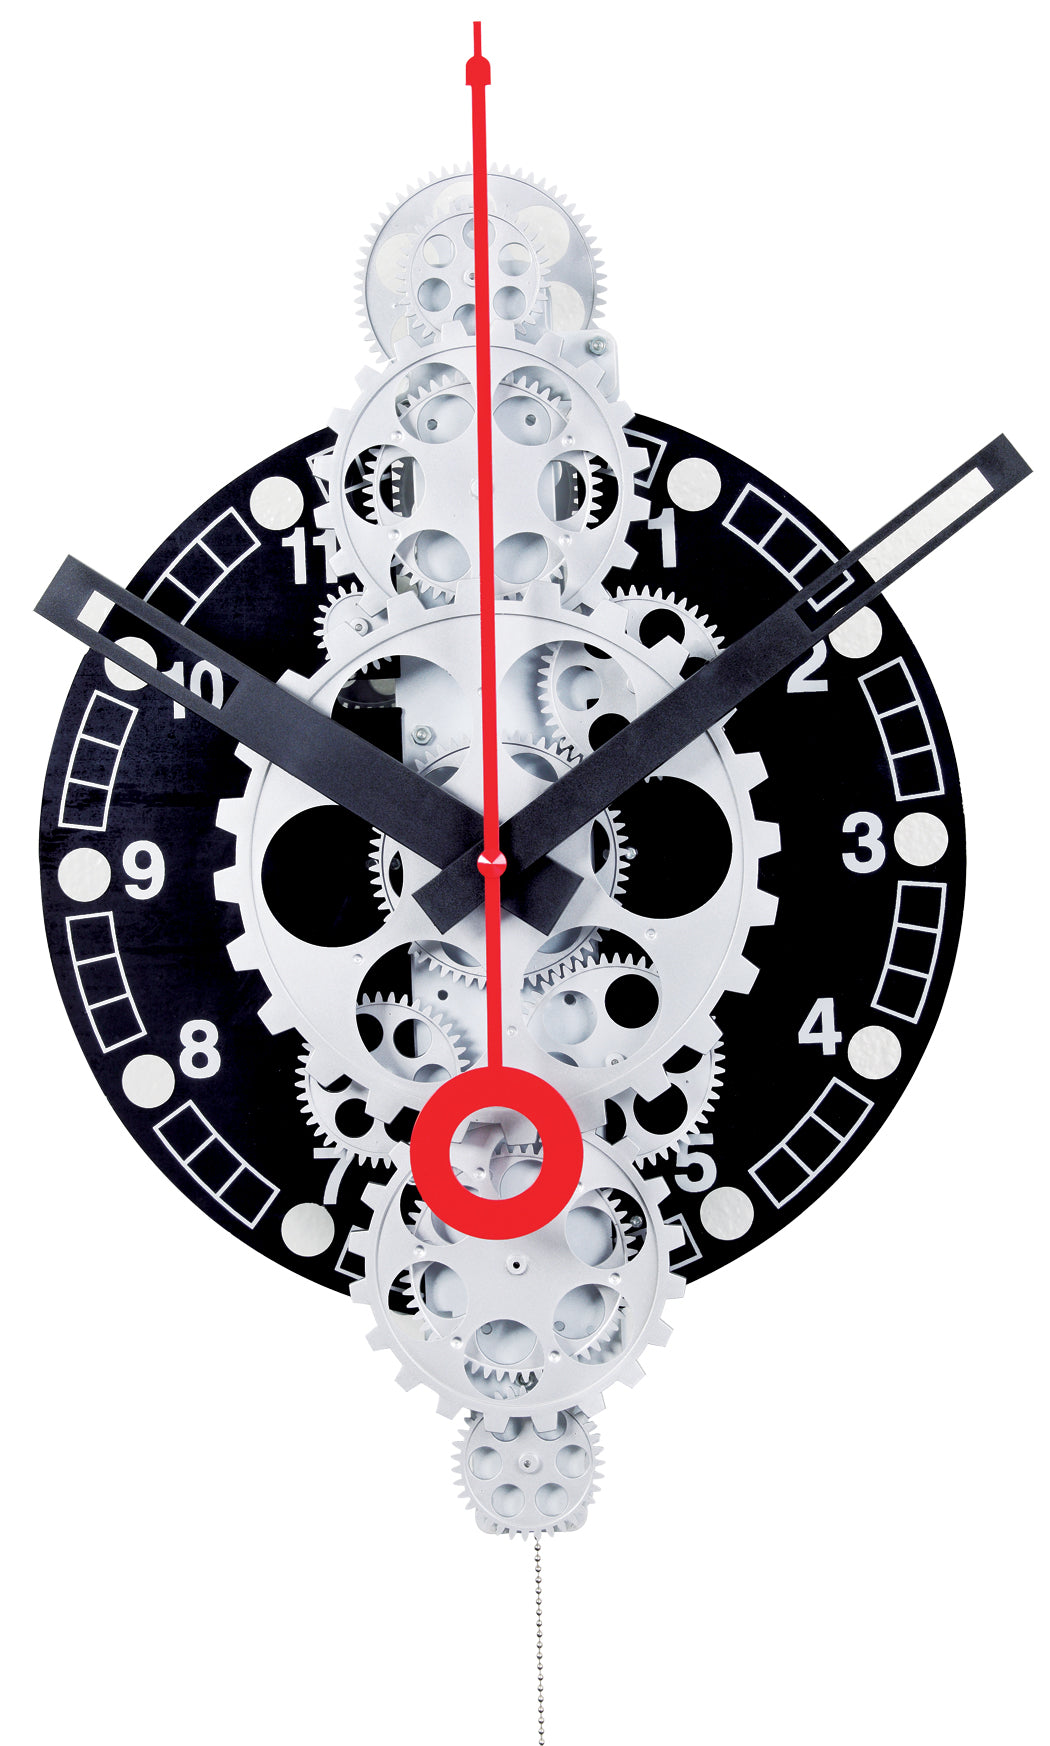 Maple's Large Moving Gear Wall Clock, Black Plexiglass Dial